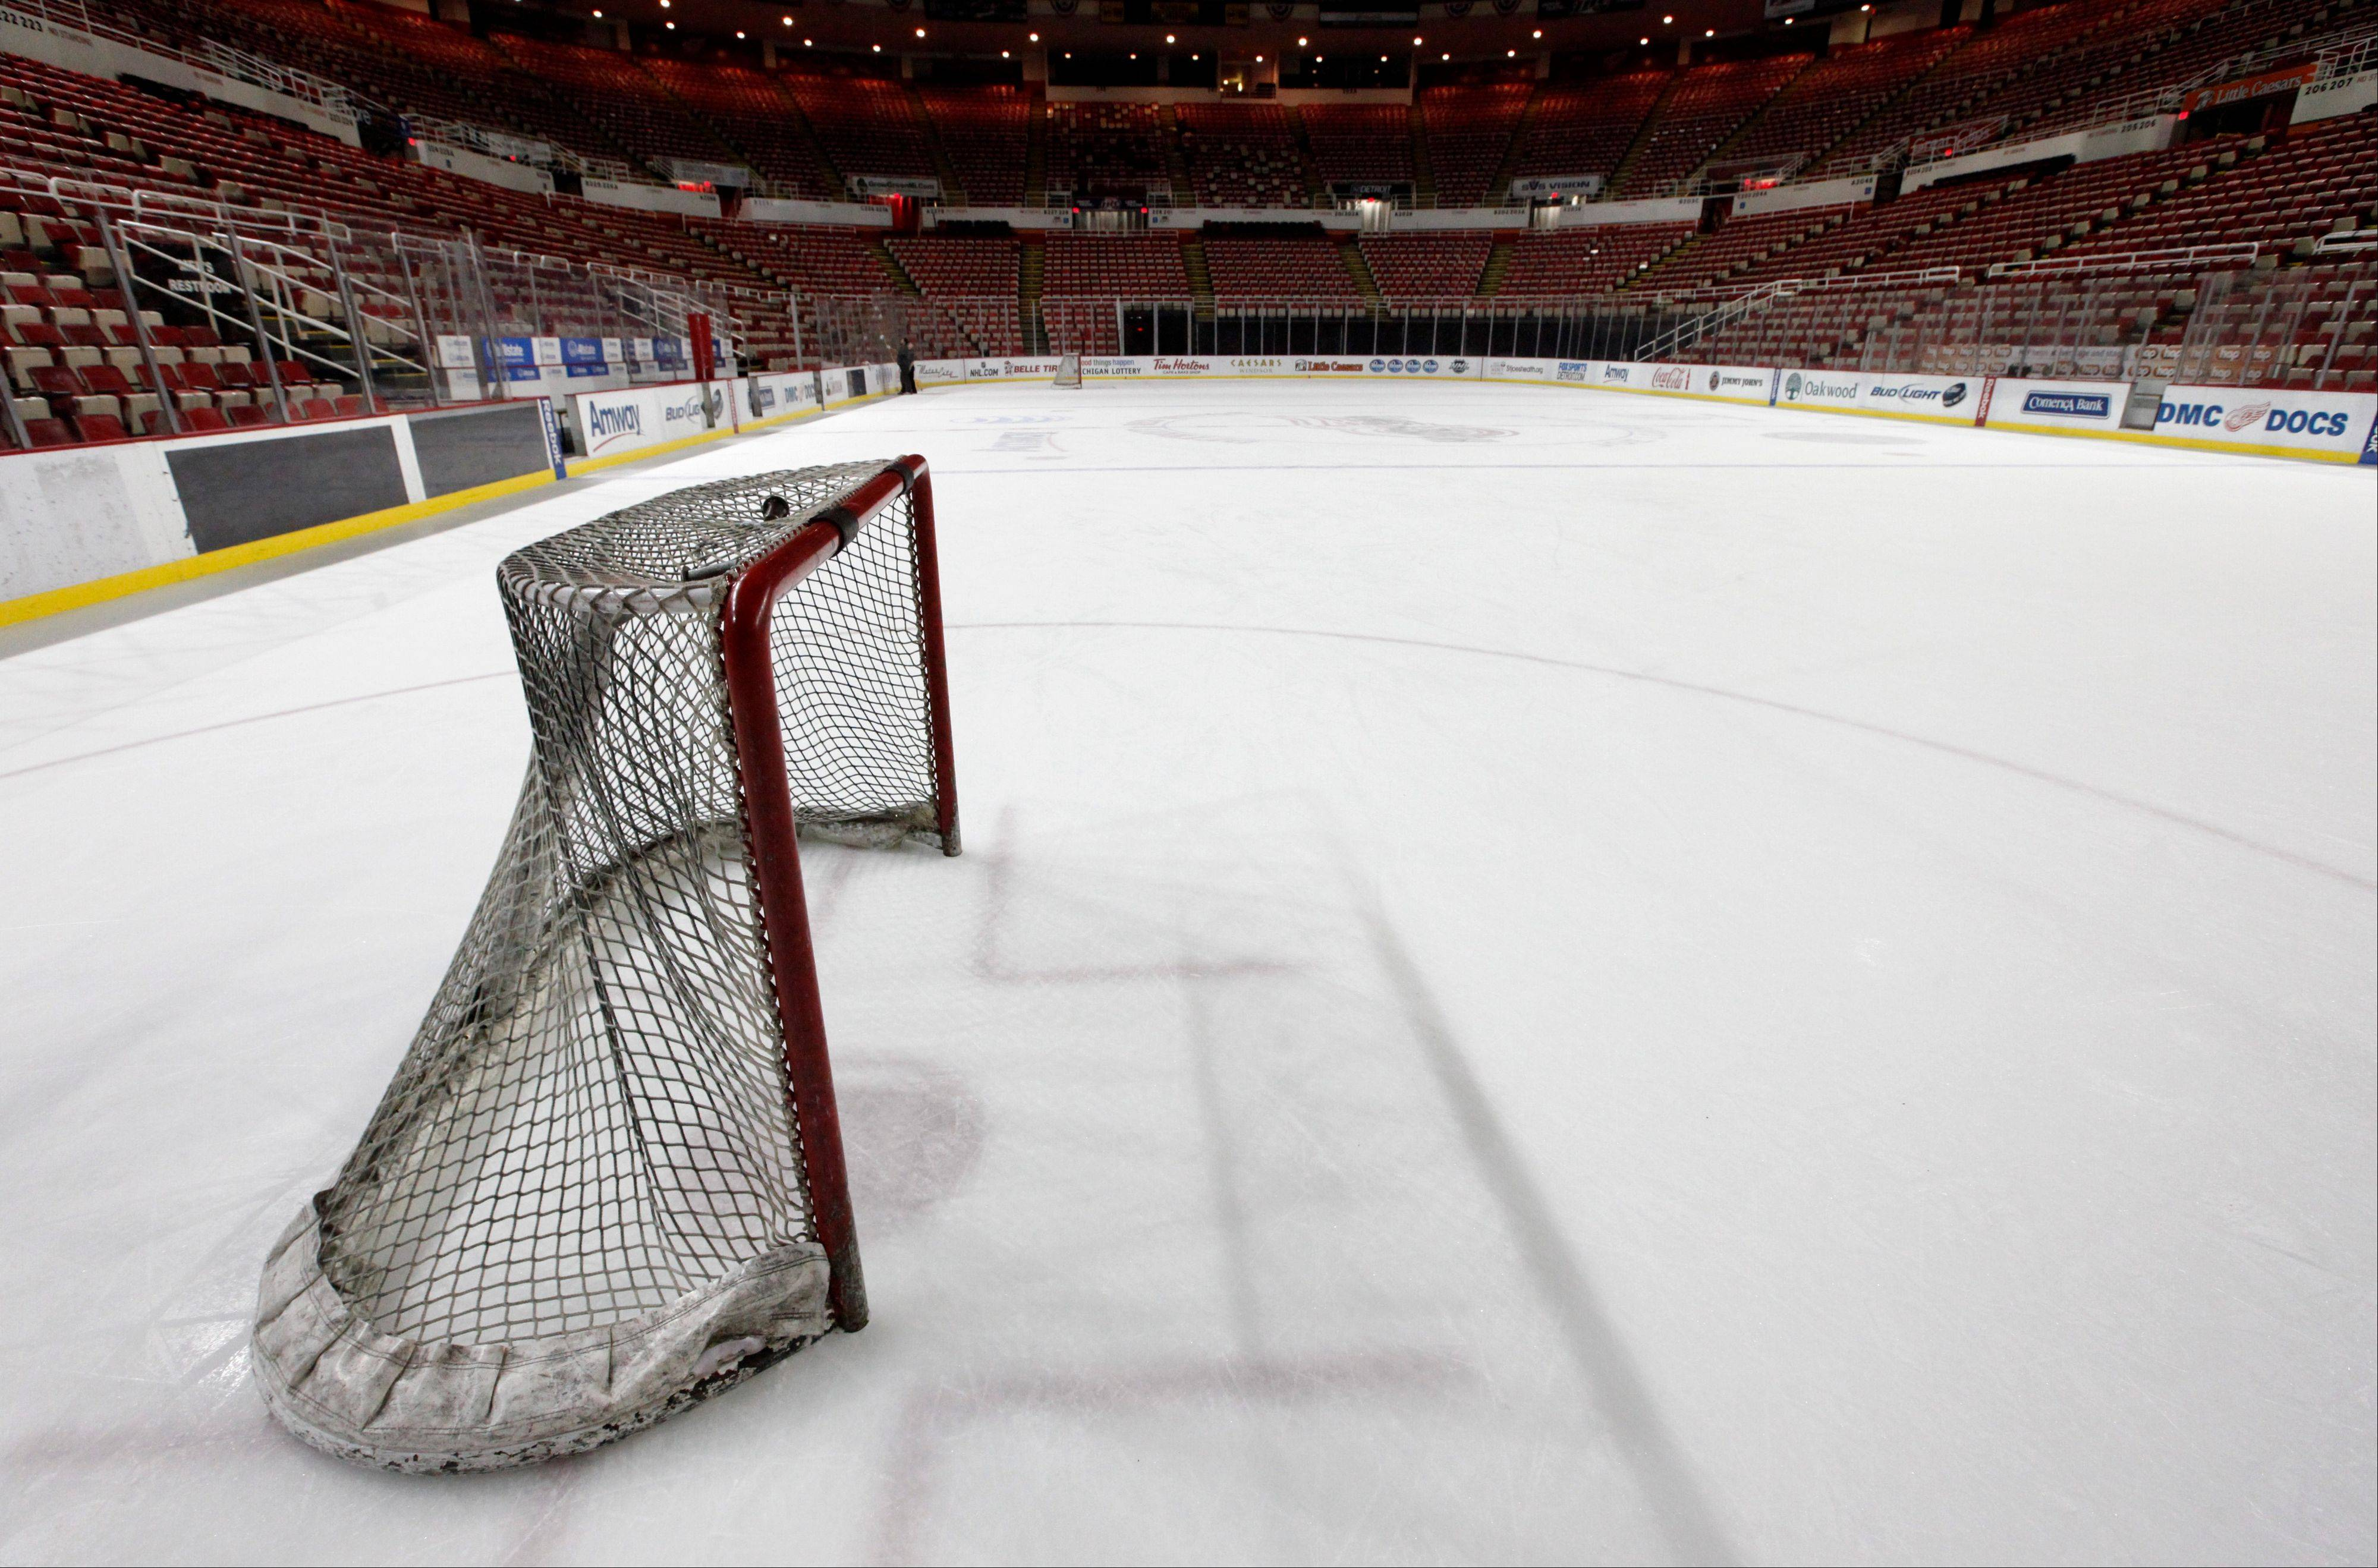 The NHL lockout has already wiped out the first three months of the season, and it may take a judge to end the lockout.